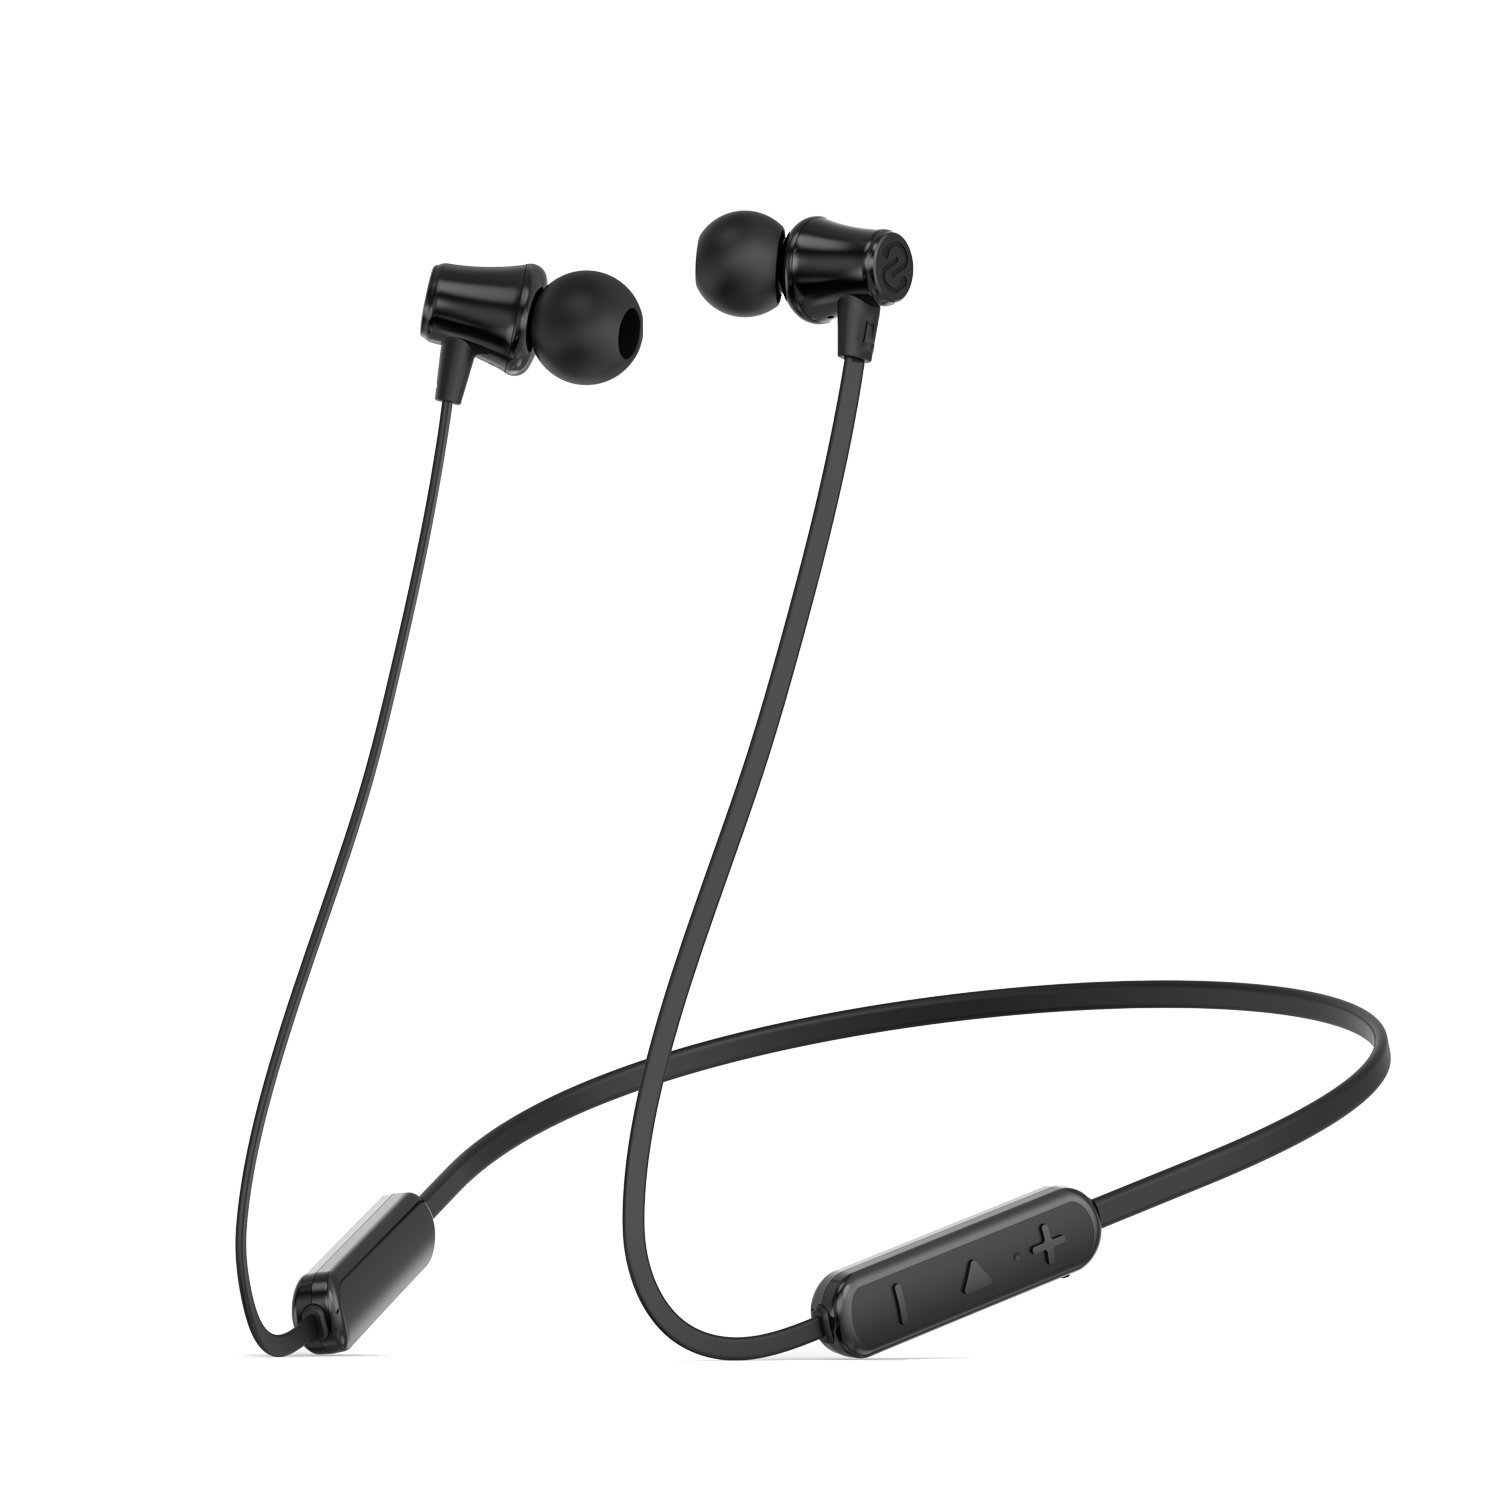 SoundPEATS Bluetooth Headphones Wireless Earbuds 4.1 Magnetic Bluetooth Earphones Lightweight Earbuds with Mic for in-Ear Earphones Sports(8 Hours Play Time, Noise Cancelling, Sweatproof)